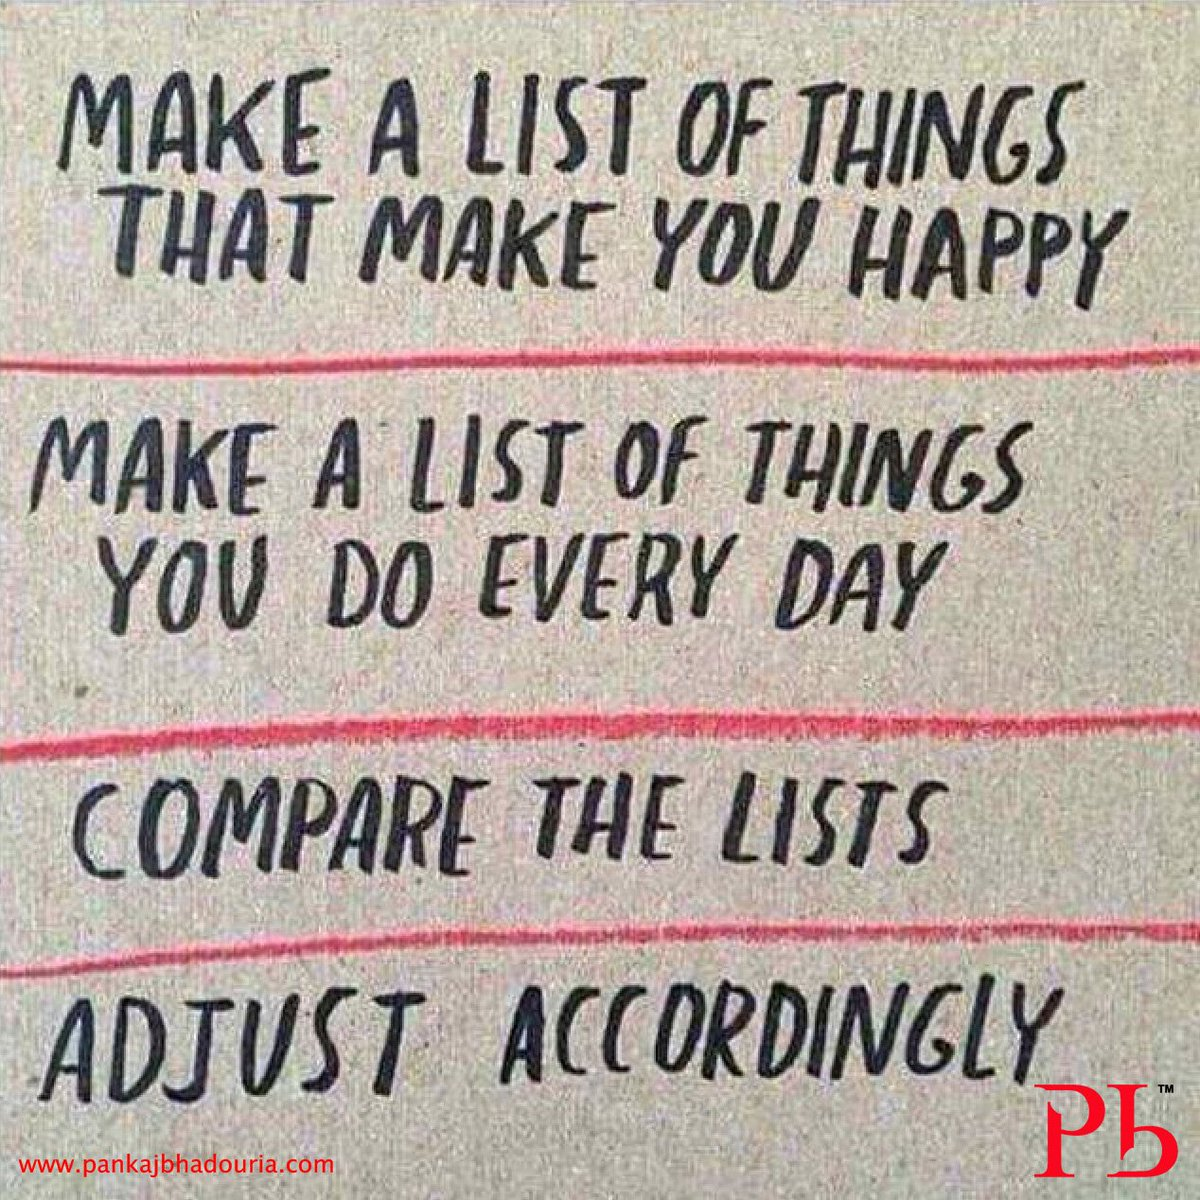 A quick check list to get things right through the day! #mondaymotivat...